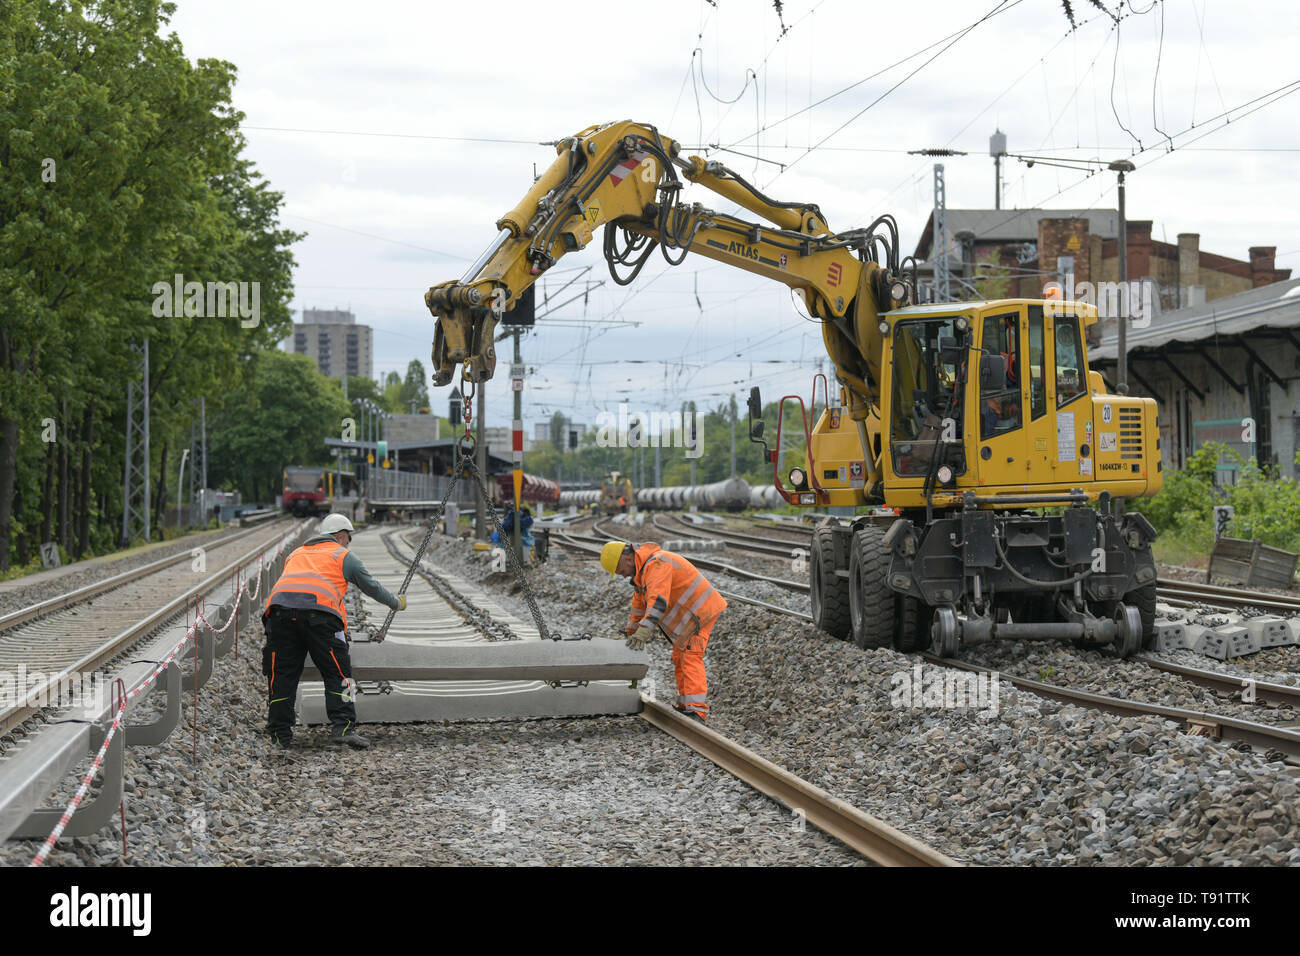 Berlin, Germany. 15th May, 2019. View of the construction work on the eastern Berlin S-Bahn ring between Greifswalder Straße and Prenzlauer Allee. Since 8 April 2019, travellers have had to live with considerable restrictions. The work is due to be completed on 20 May. Credit: Jörg Carstensen/dpa/Alamy Live News - Stock Image